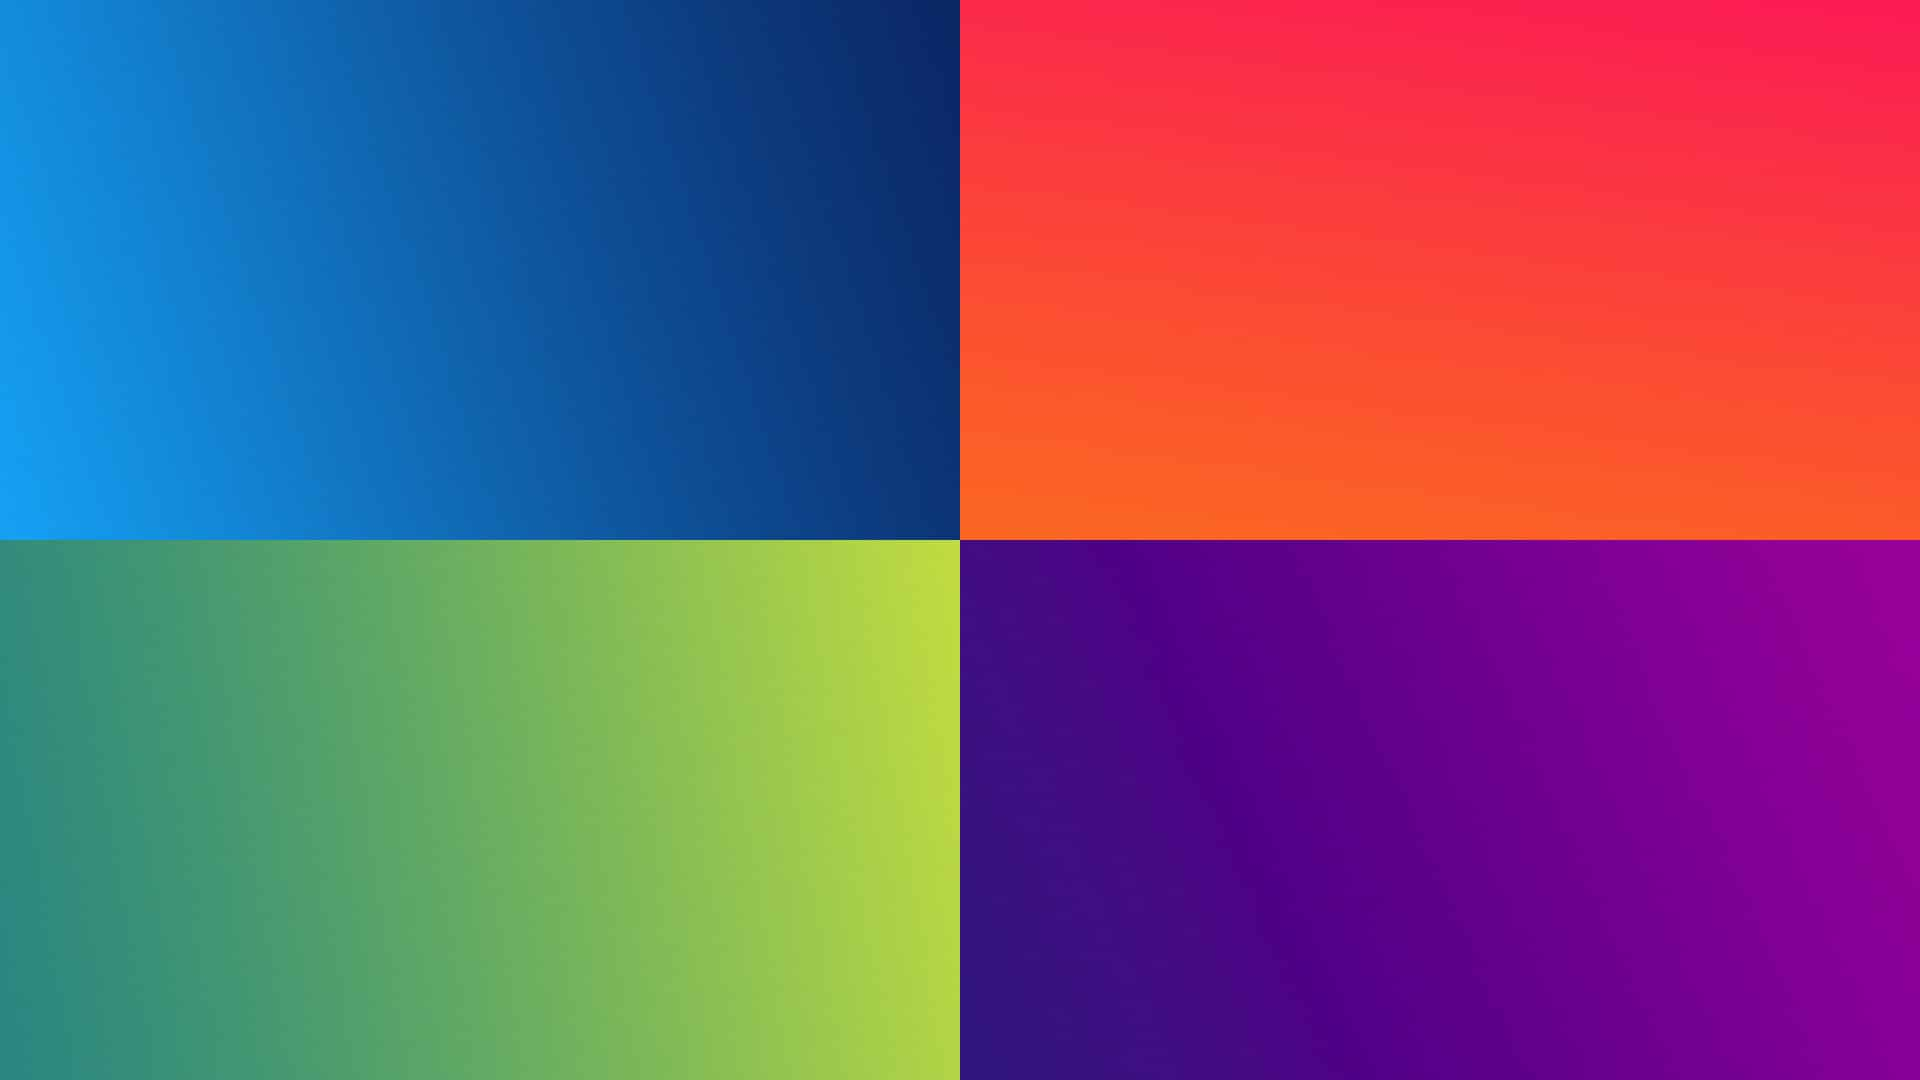 20 Free Hot Gradient Stills